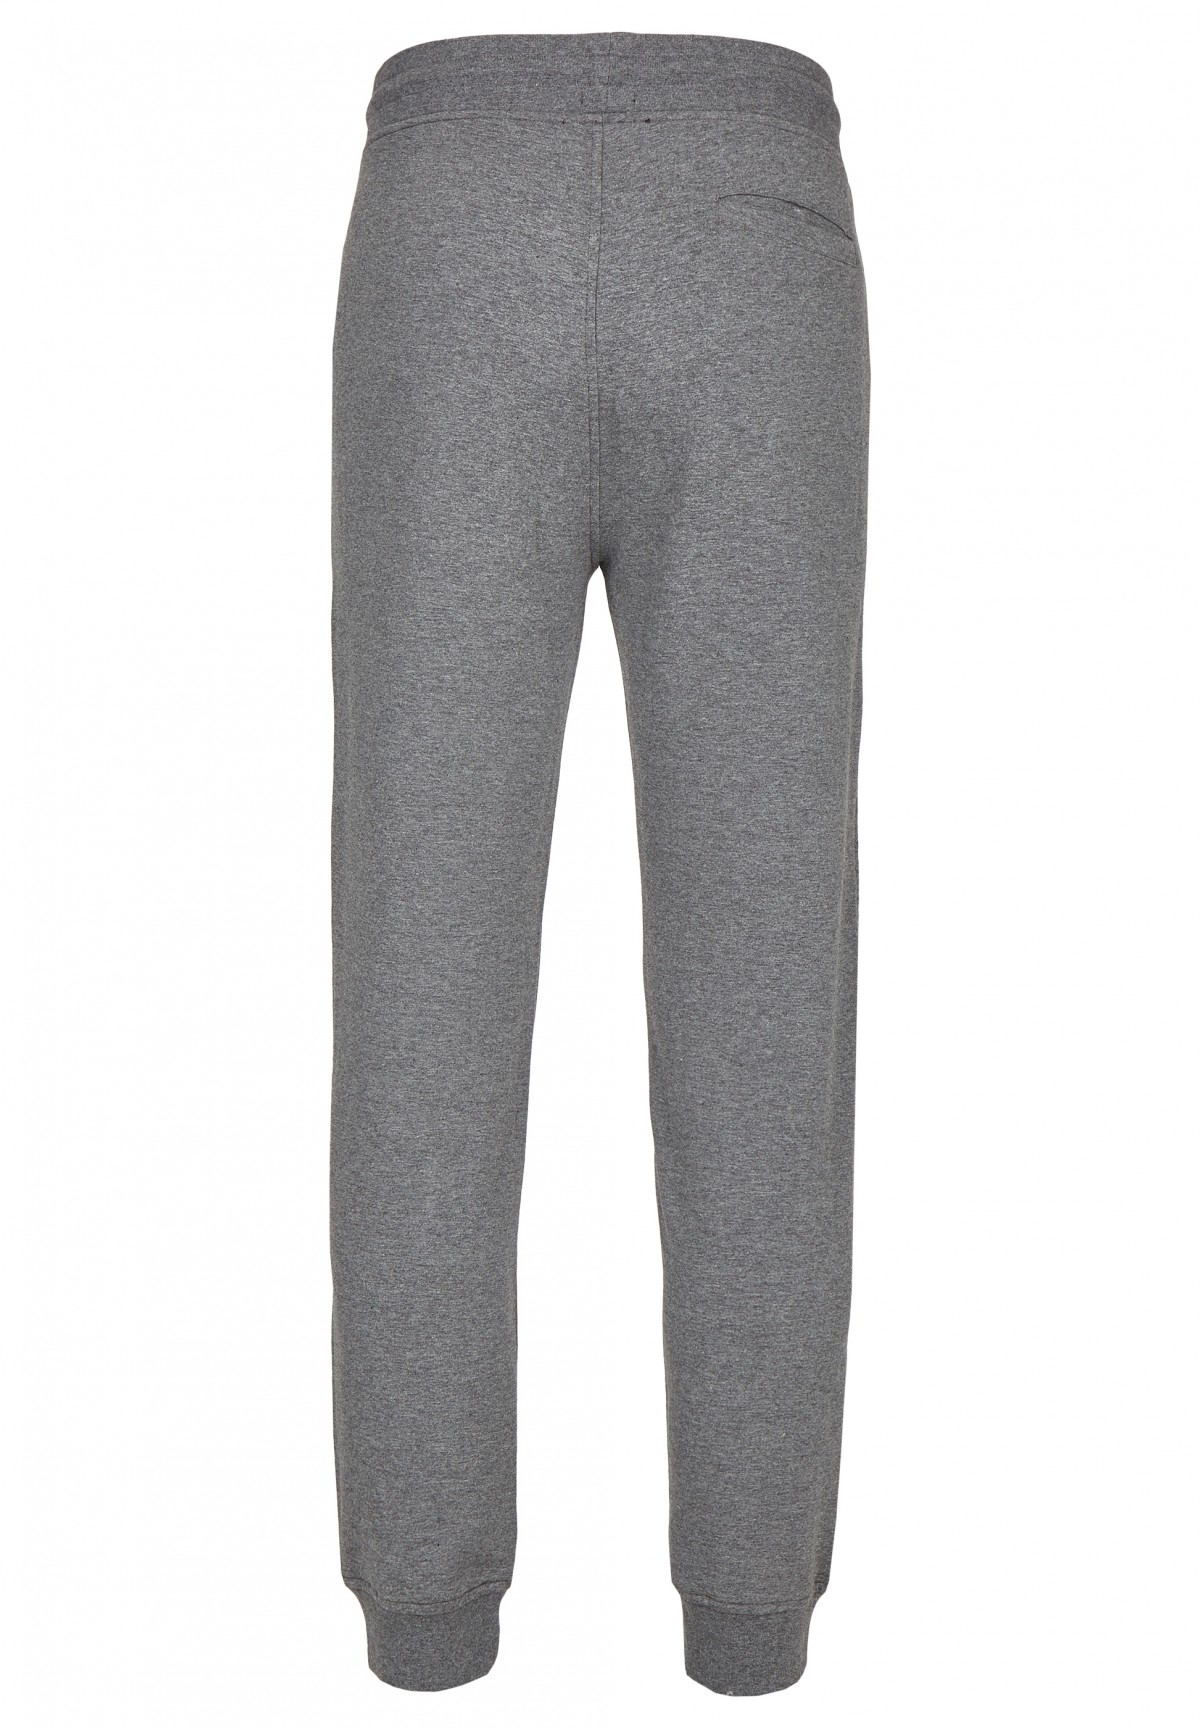 DH Travel Jogginghose / TROUSERS